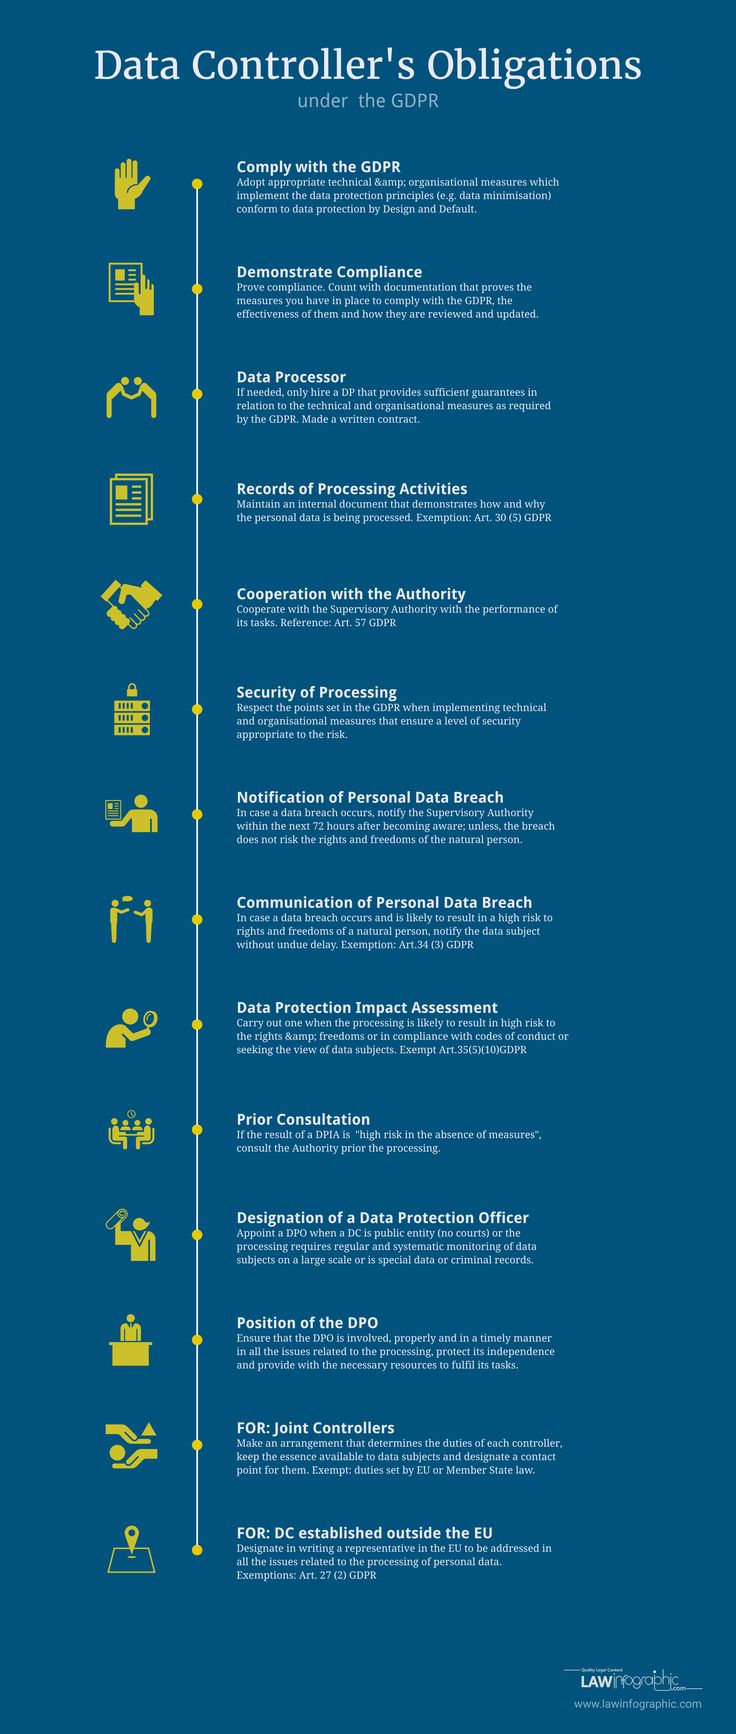 Who is the Data Controller and what are its responsibilities under the GDPR? | Law Infographic